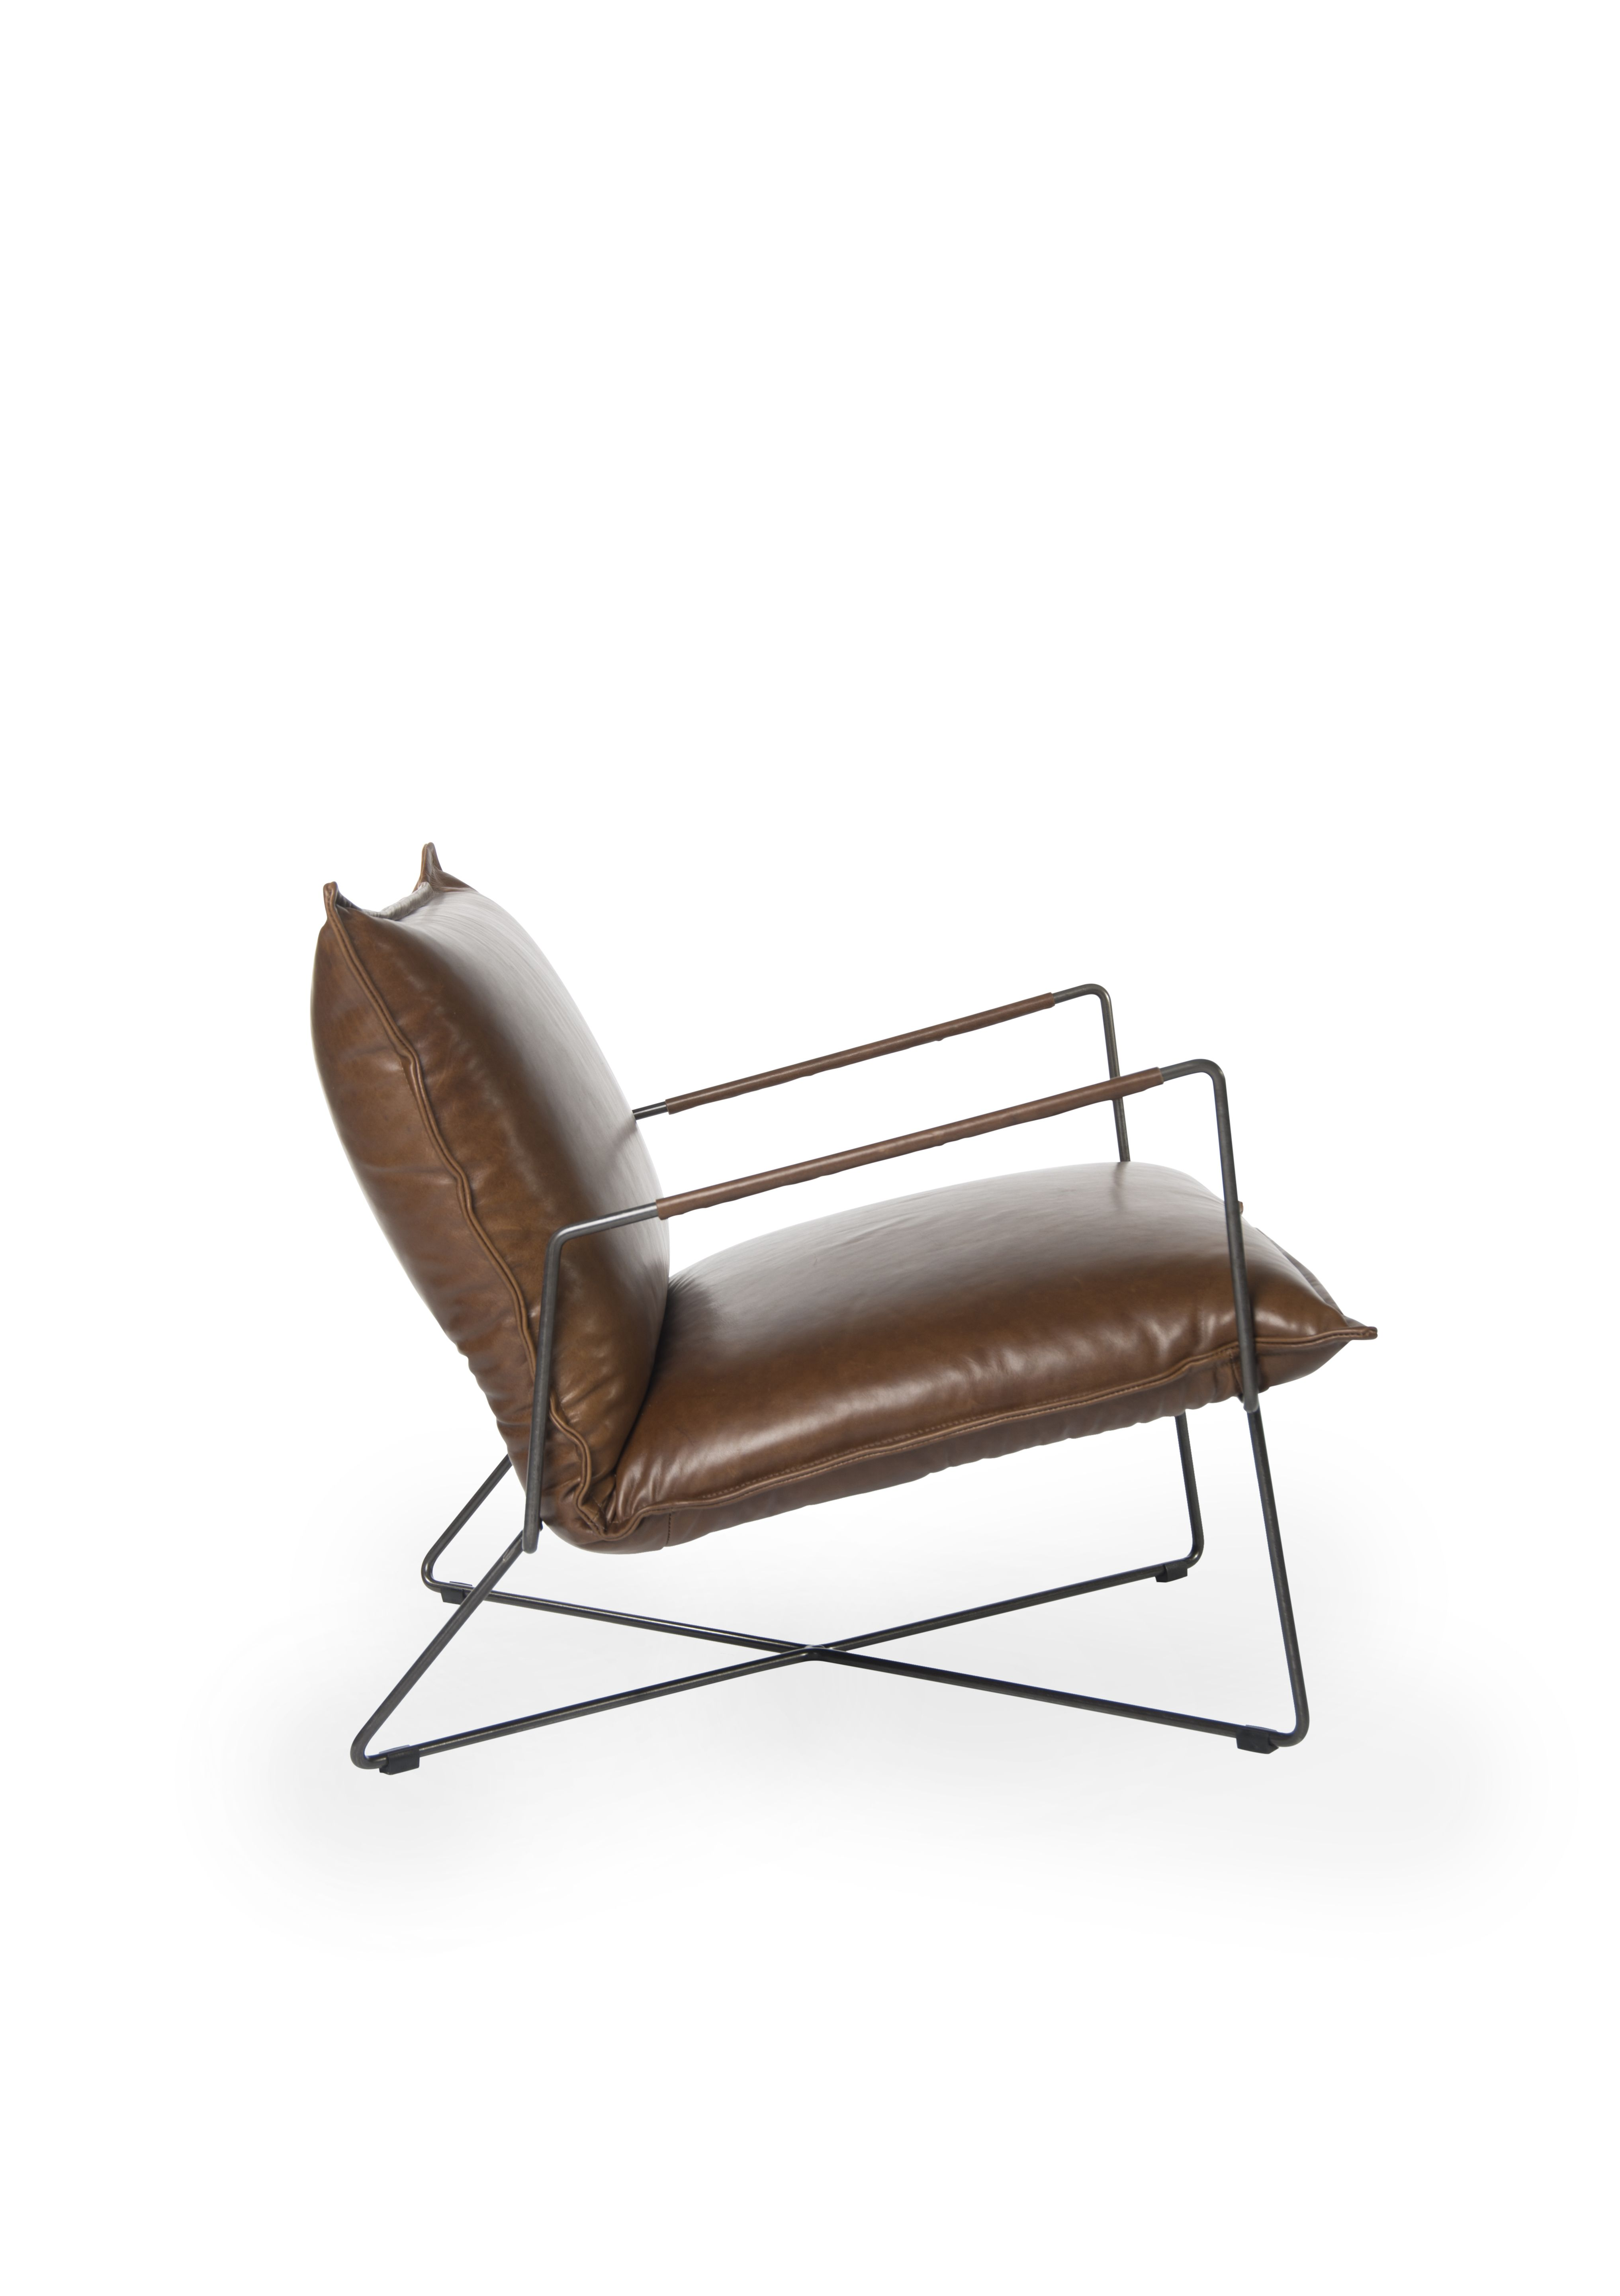 kohl lounge chair met voetenbank wood club welcome to all our customers and agenyts a meubelbeurs